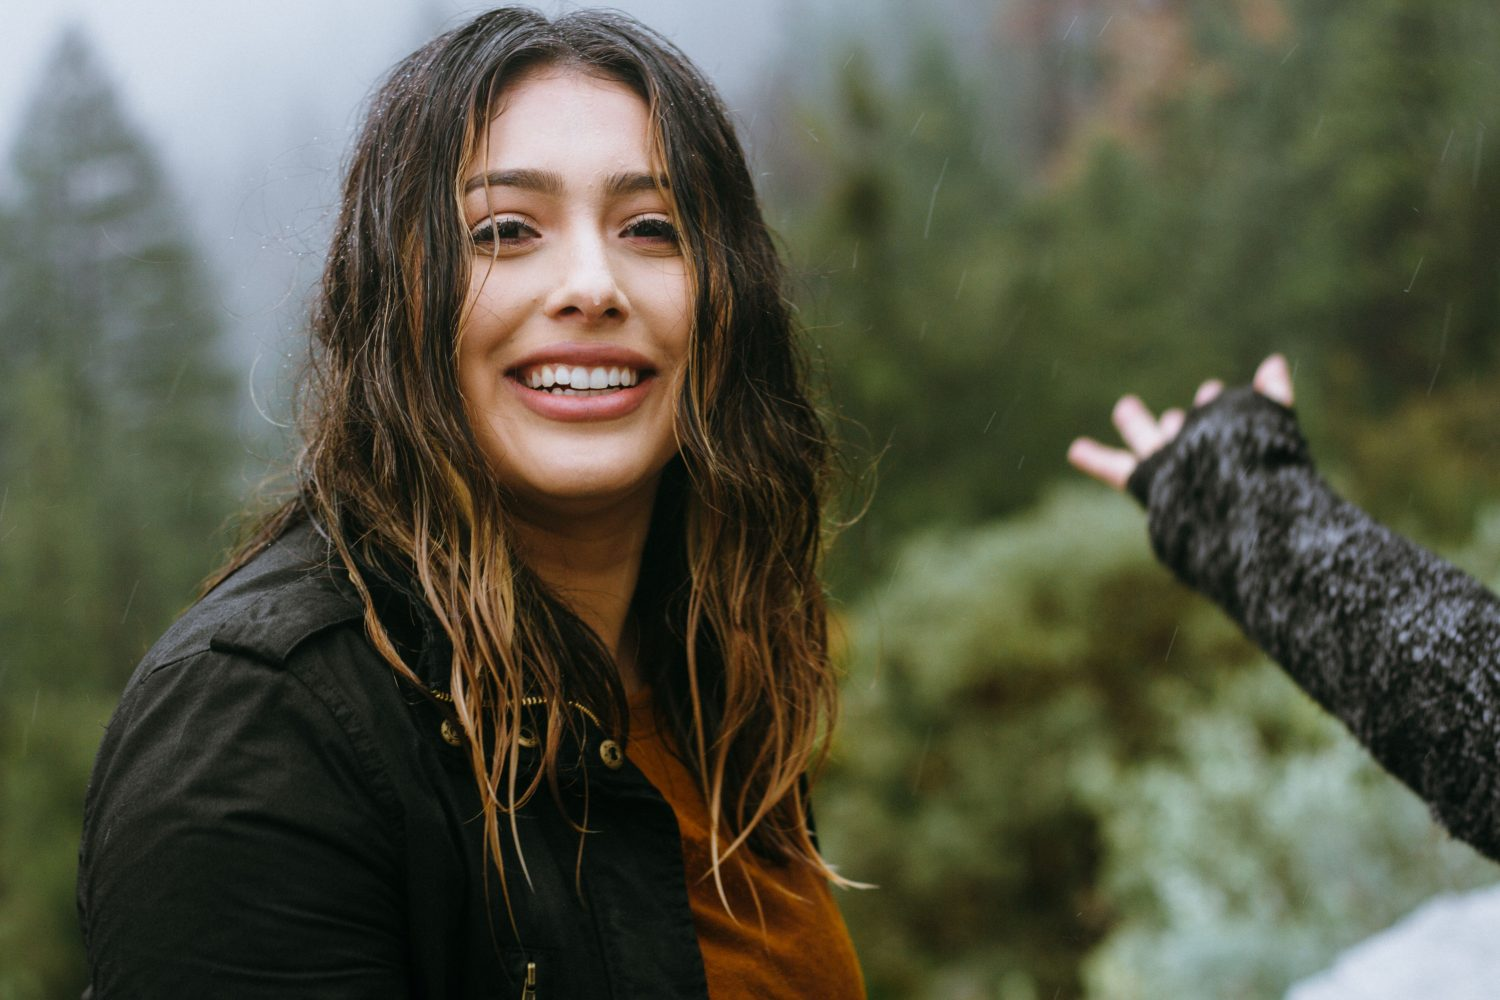 woman wearing black jacket smiling with forest background